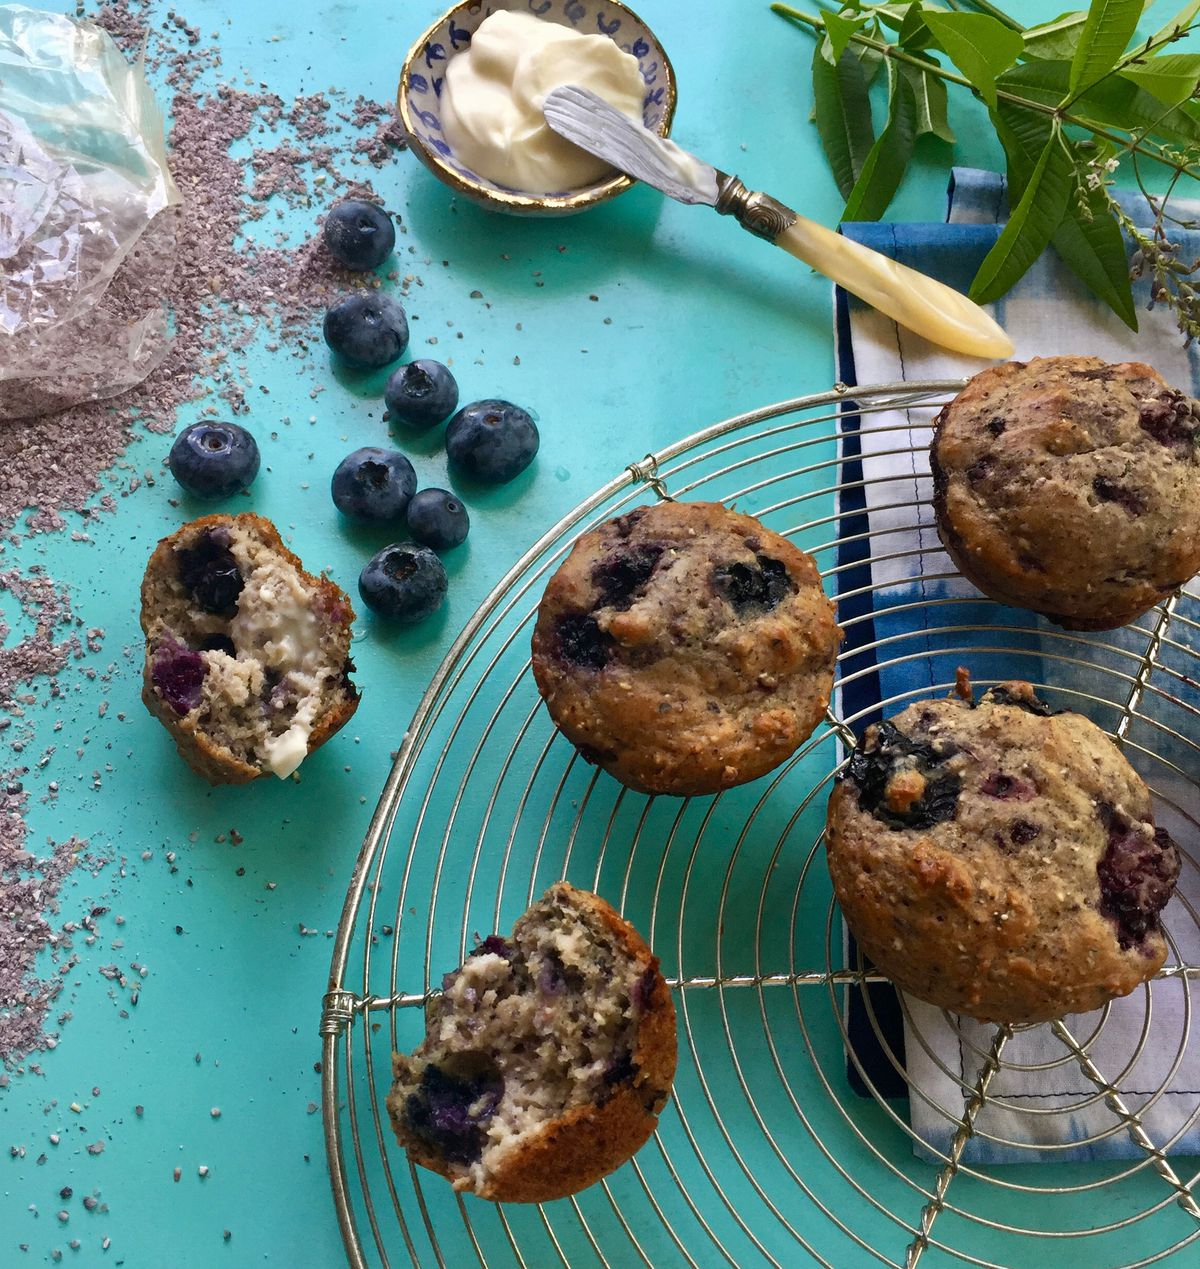 Blue cornmeal gives color and texture to blueberry muffins. (Photo by Kim Sunée)